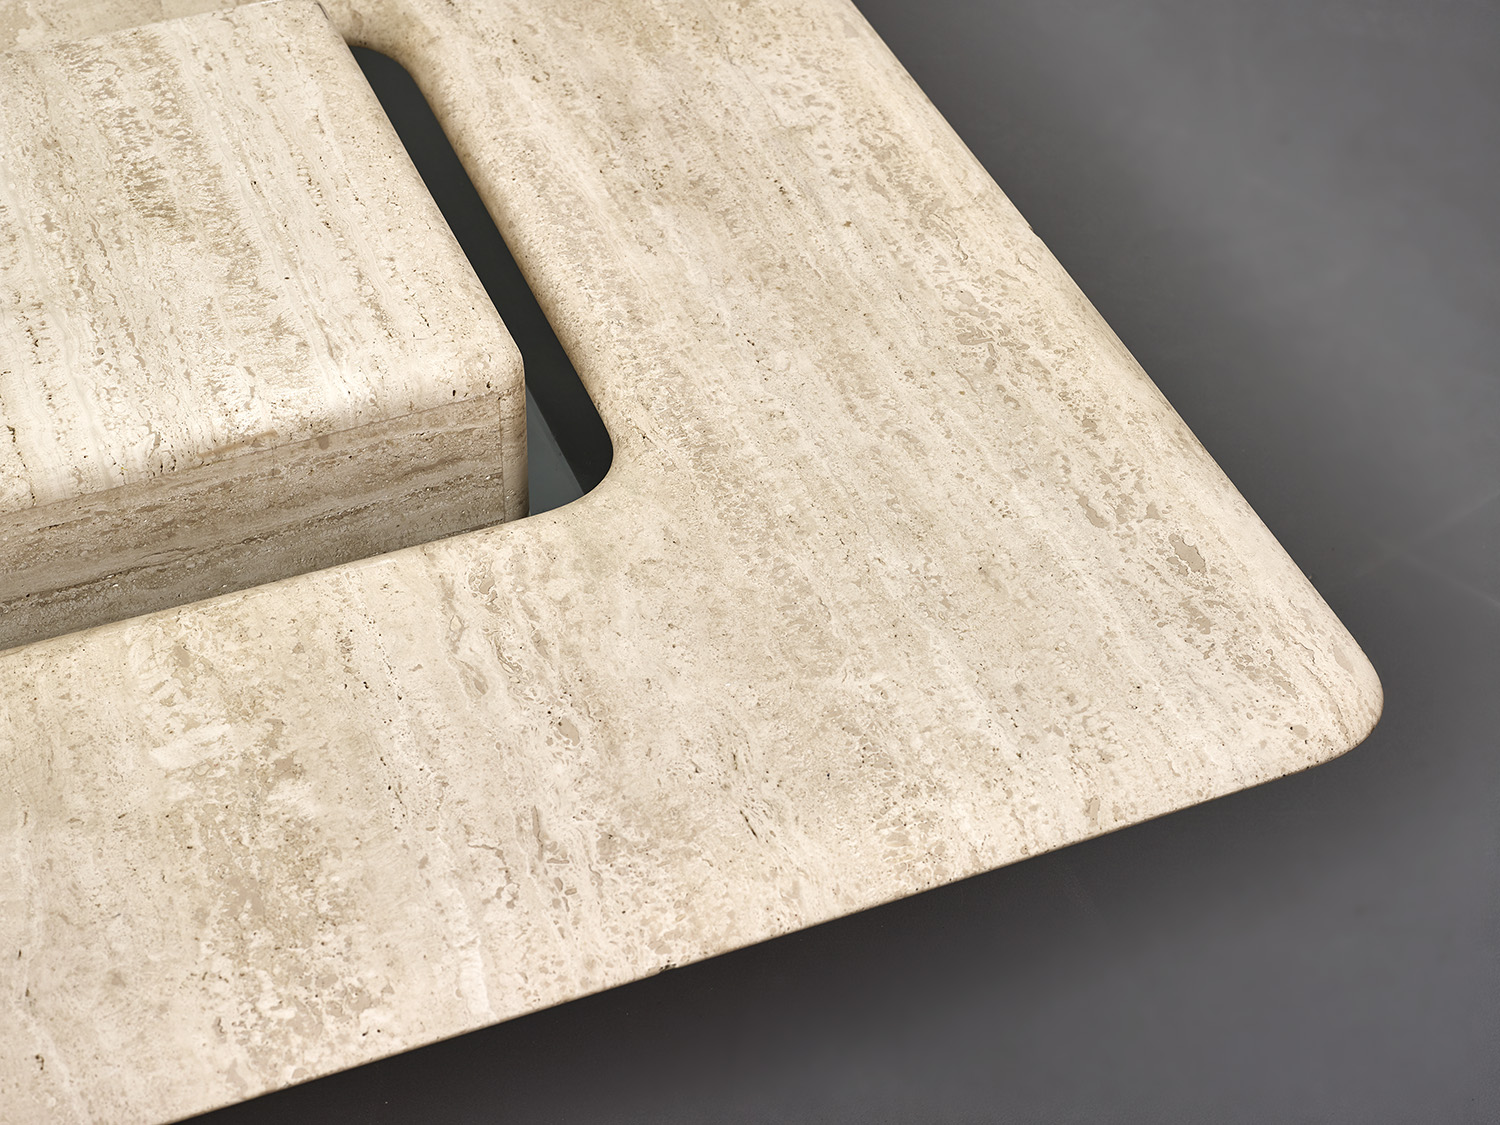 italian-travertine-coffee-table-with-floating-top-1970-1980-image-04